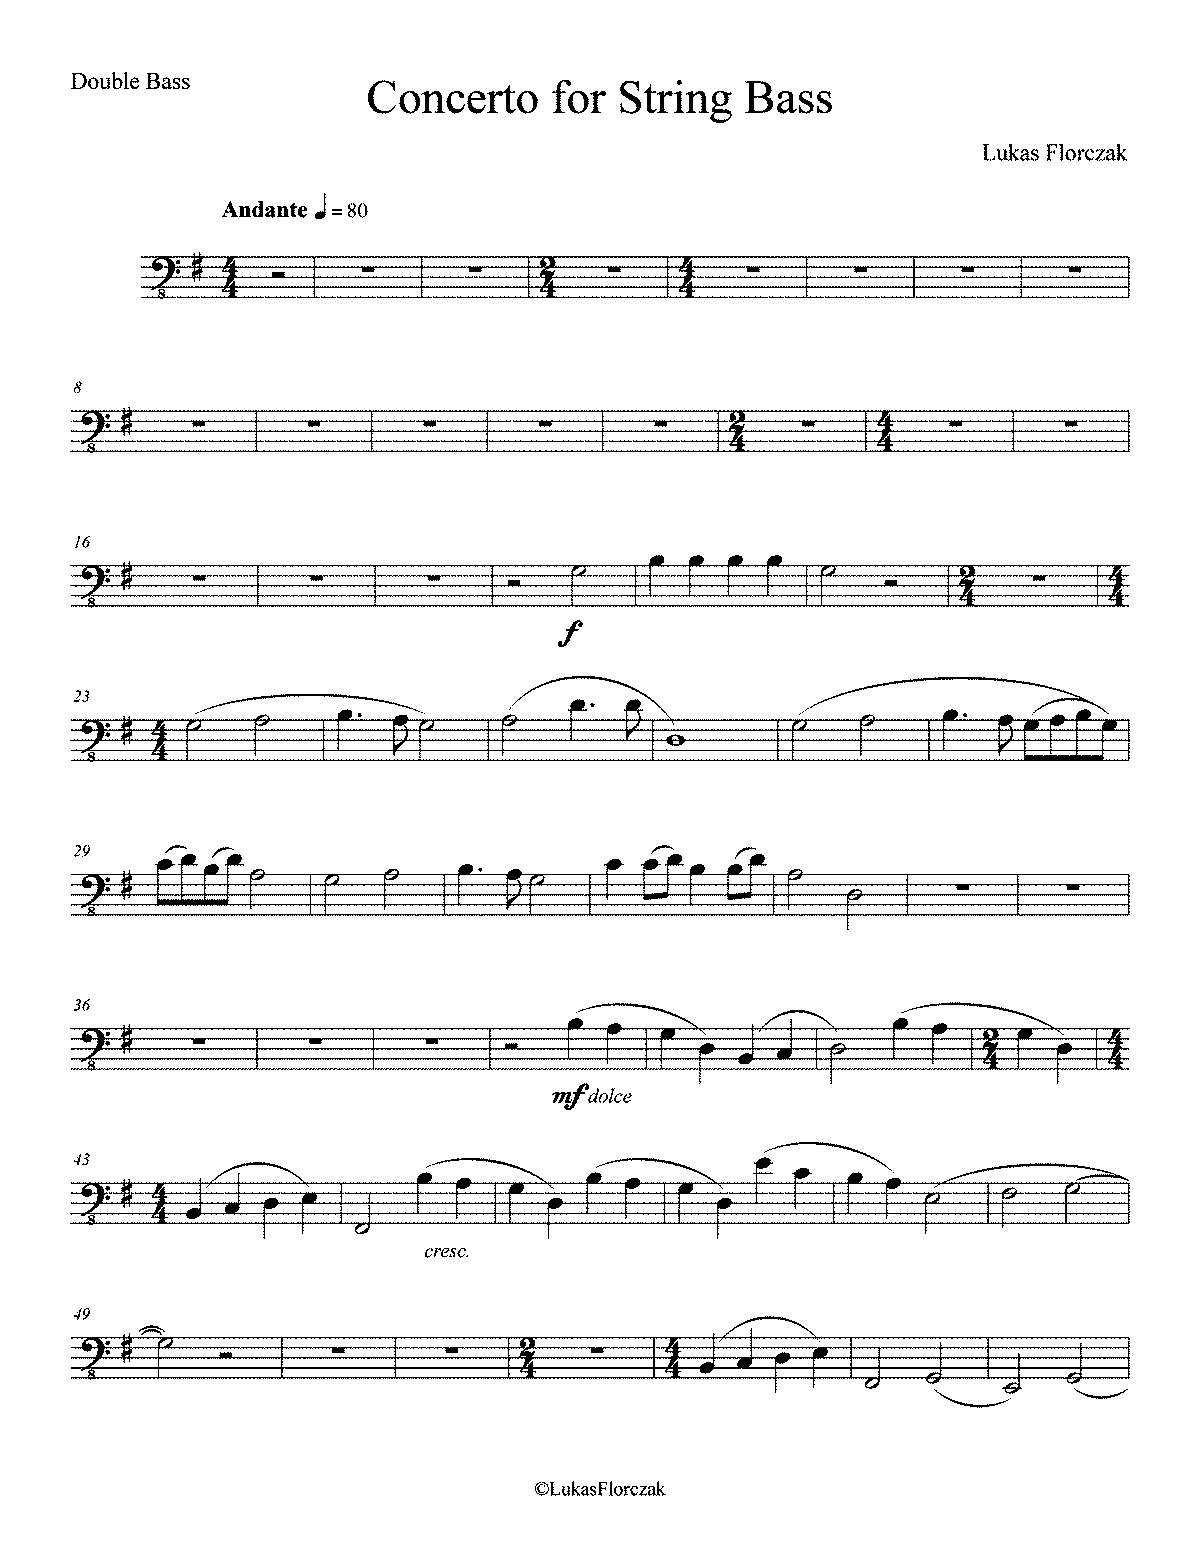 PMLP393847-Concerto for String Bass - Double Bass.pdf